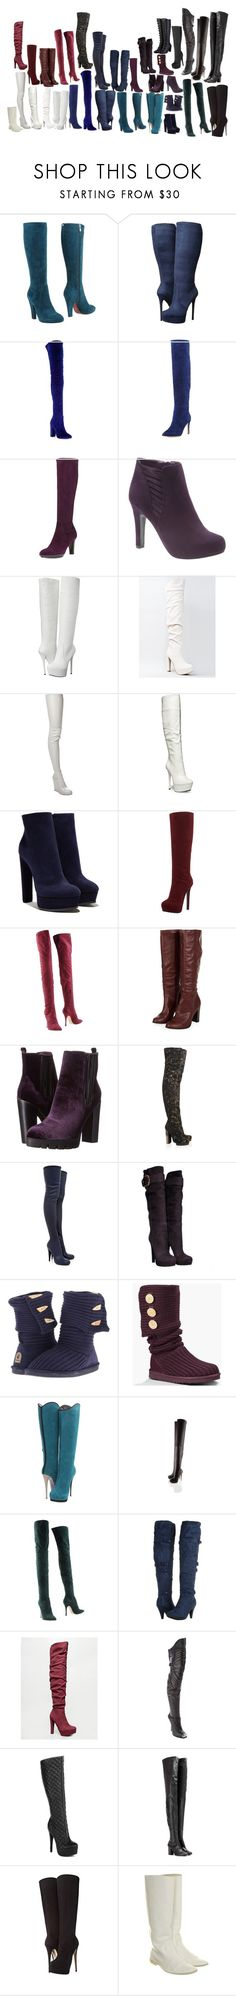 """""""Boots"""" by gone-girl ❤ liked on Polyvore featuring Cesare Paciotti, Jessica Simpson, Aquazzura, Joie, Aquatalia by Marvin K., Lane Bryant, Steve Madden, Qupid, Maison Margiela and Casadei"""